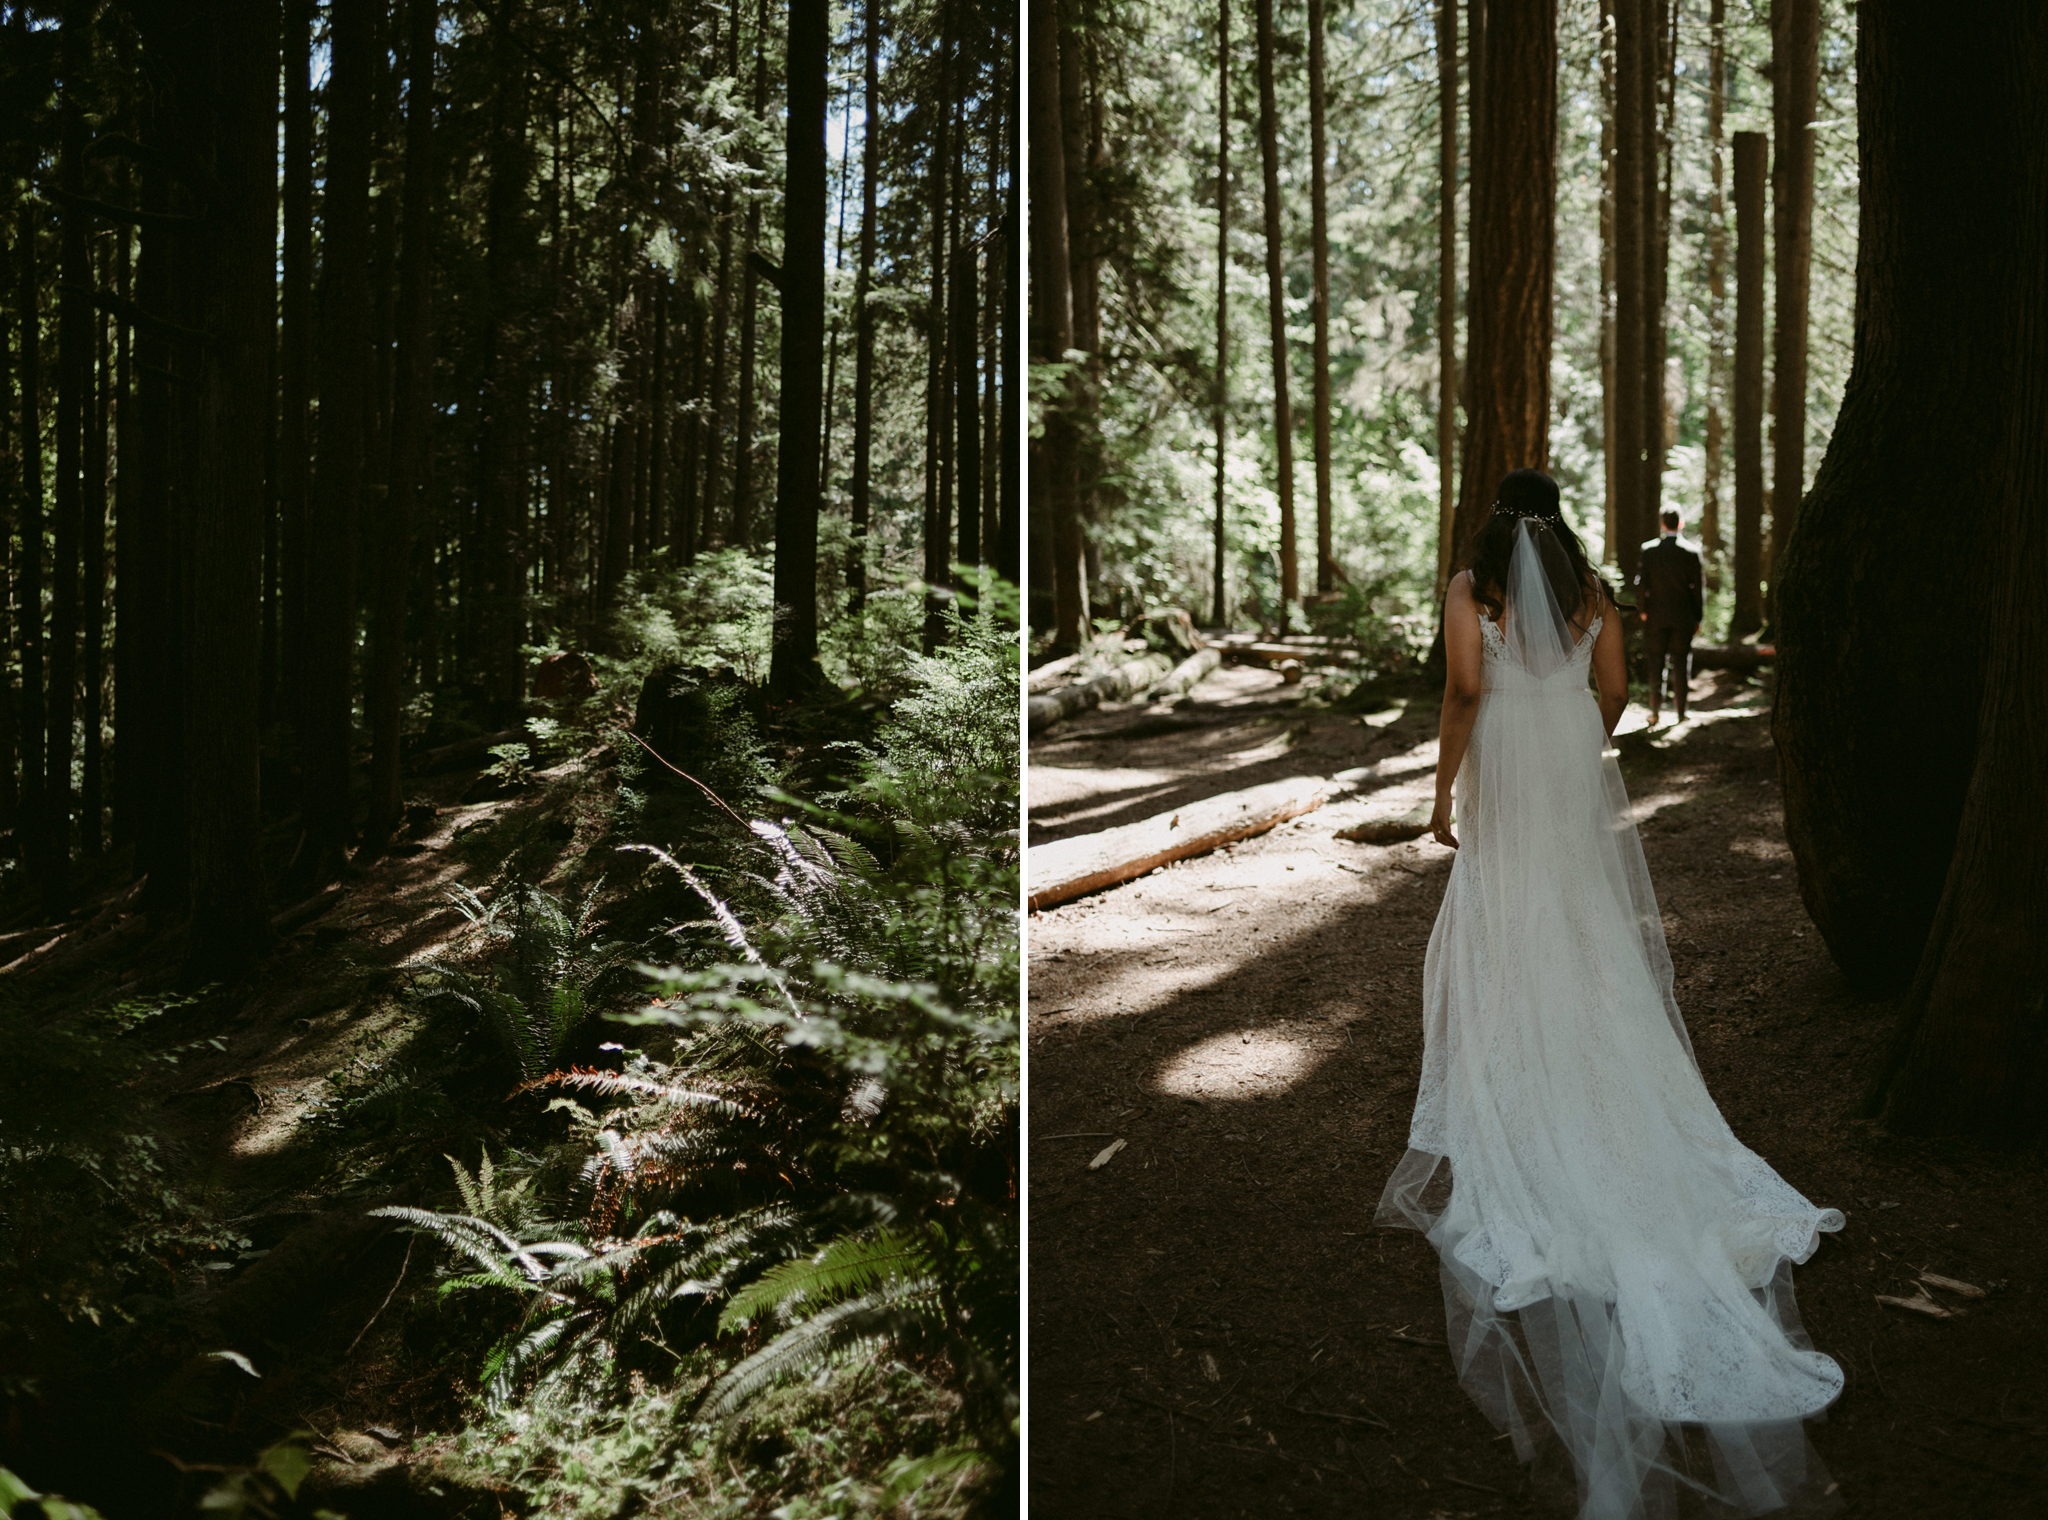 bride walking up to groom in forest for first look